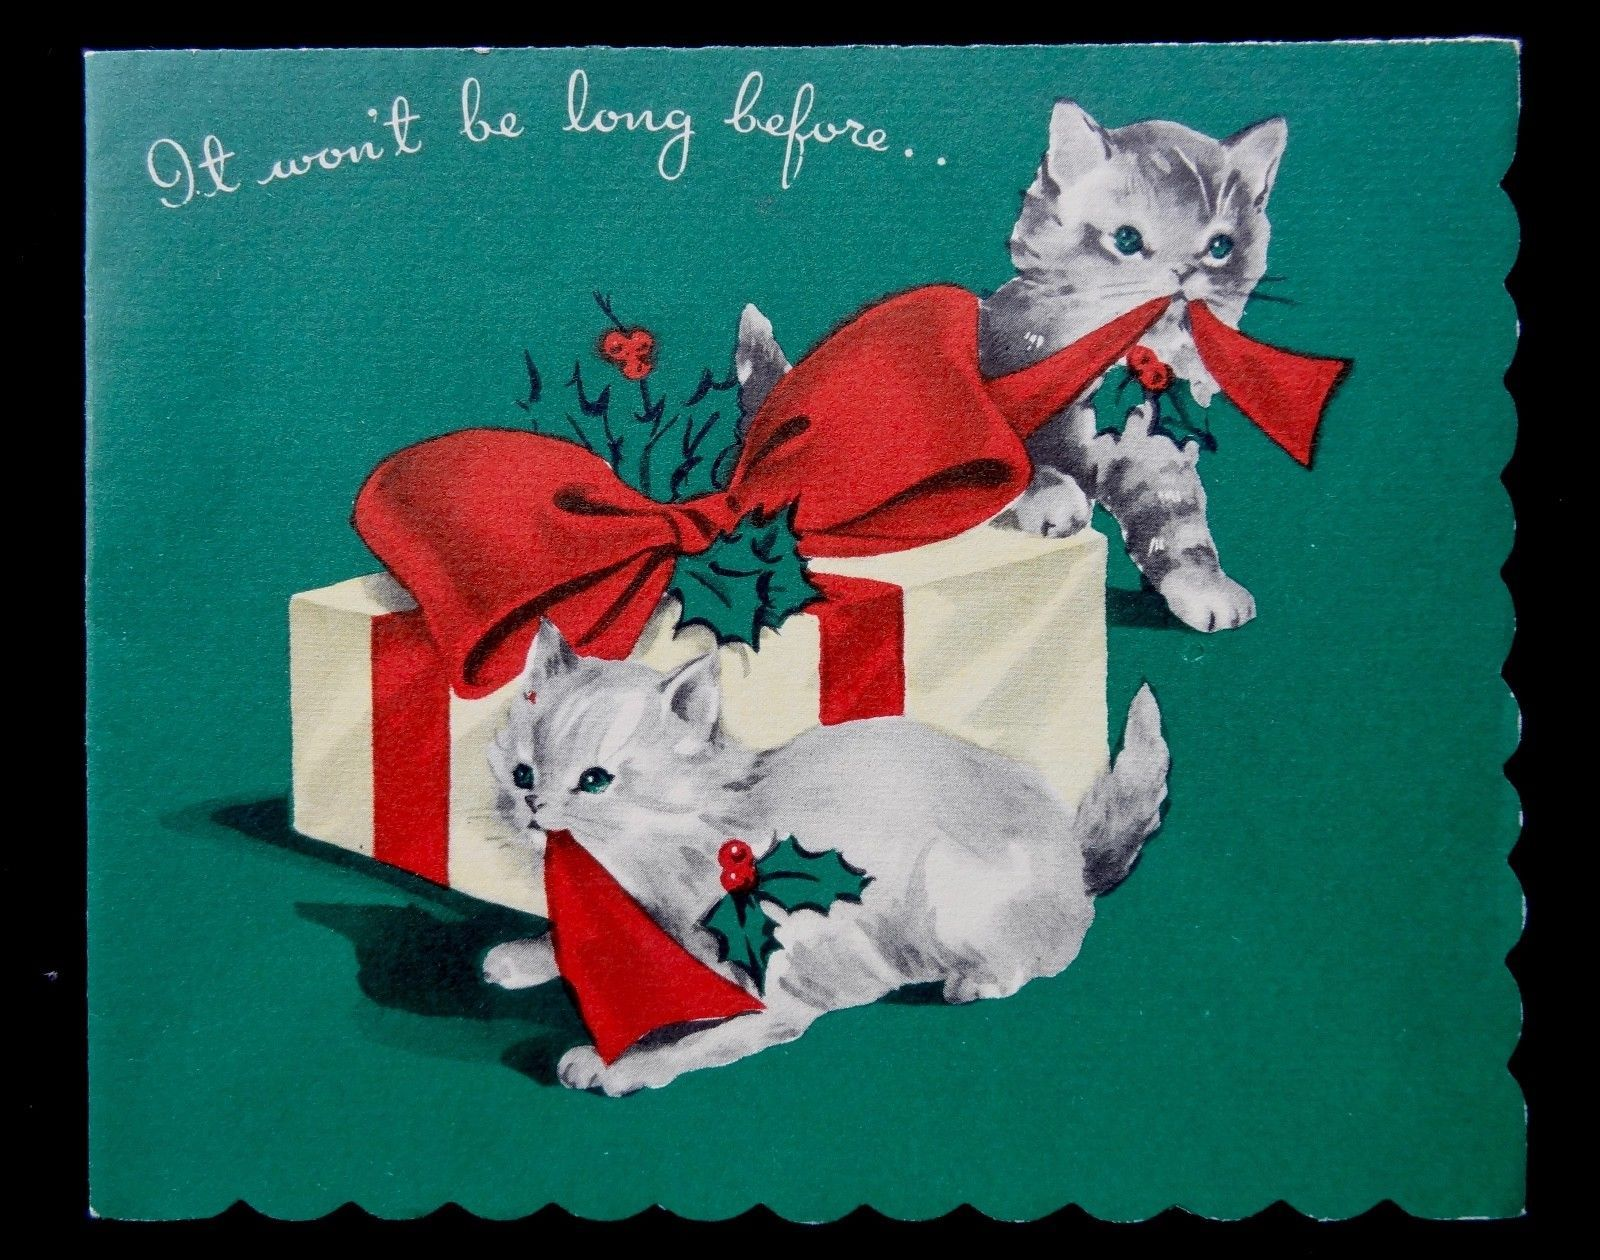 Vintage Christmas Duets Greeting Card Kittens Cats Pulling Bow On Present Ebay Vintage Christmas Cards Vintage Christmas Christmas Watercolor